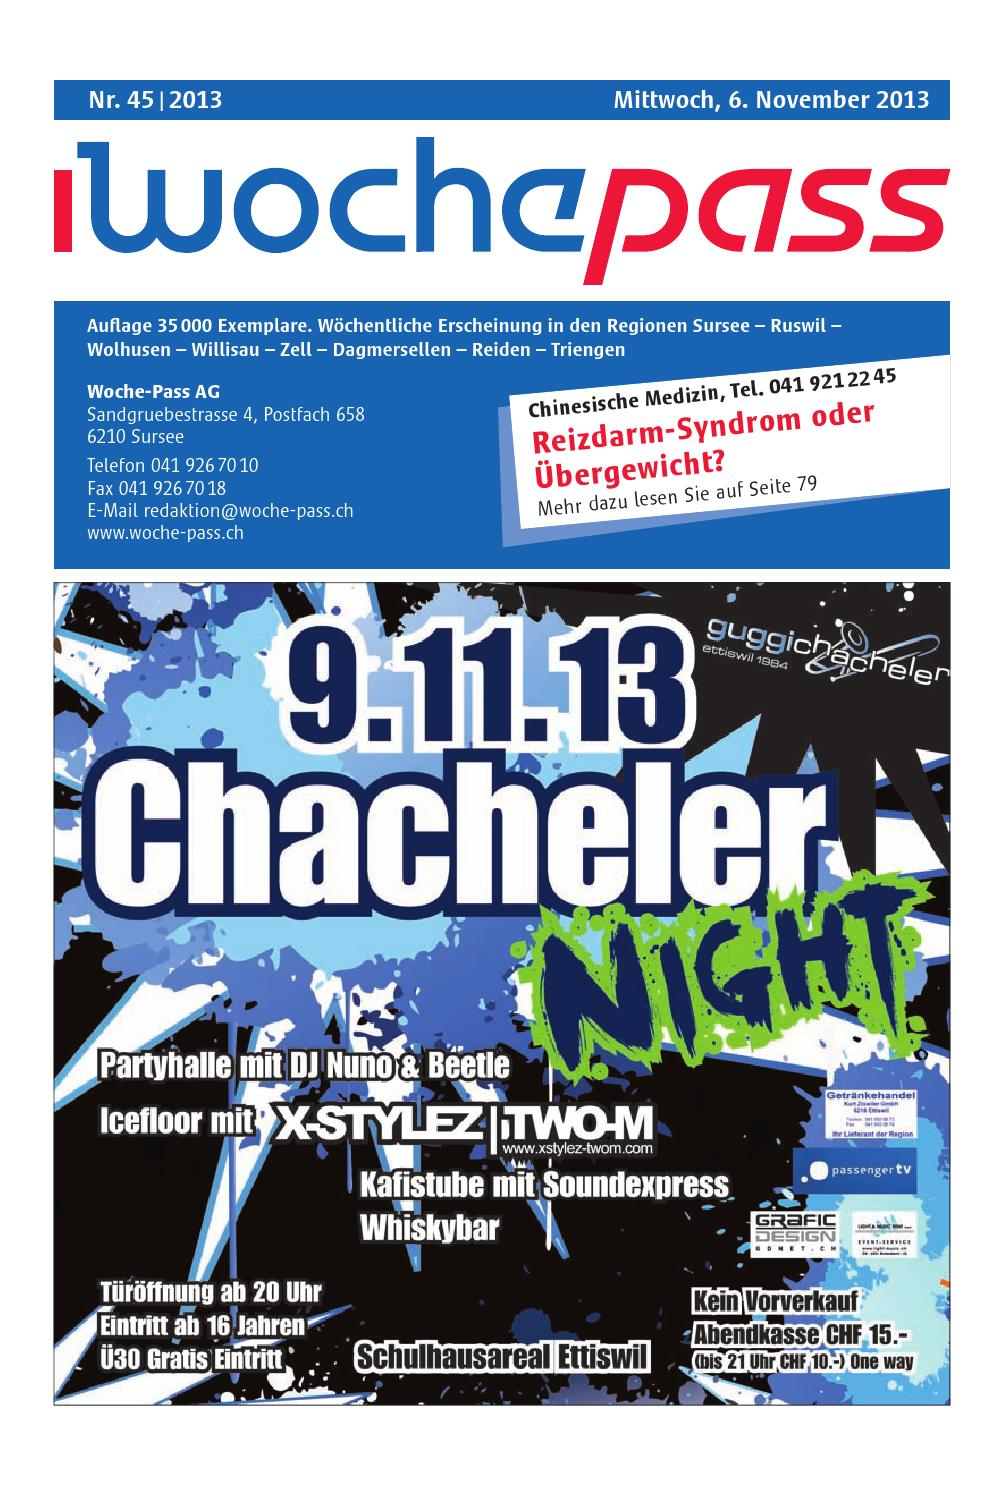 Woche-Pass | KW45 | 6. November 2013 by Woche-Pass AG - issuu